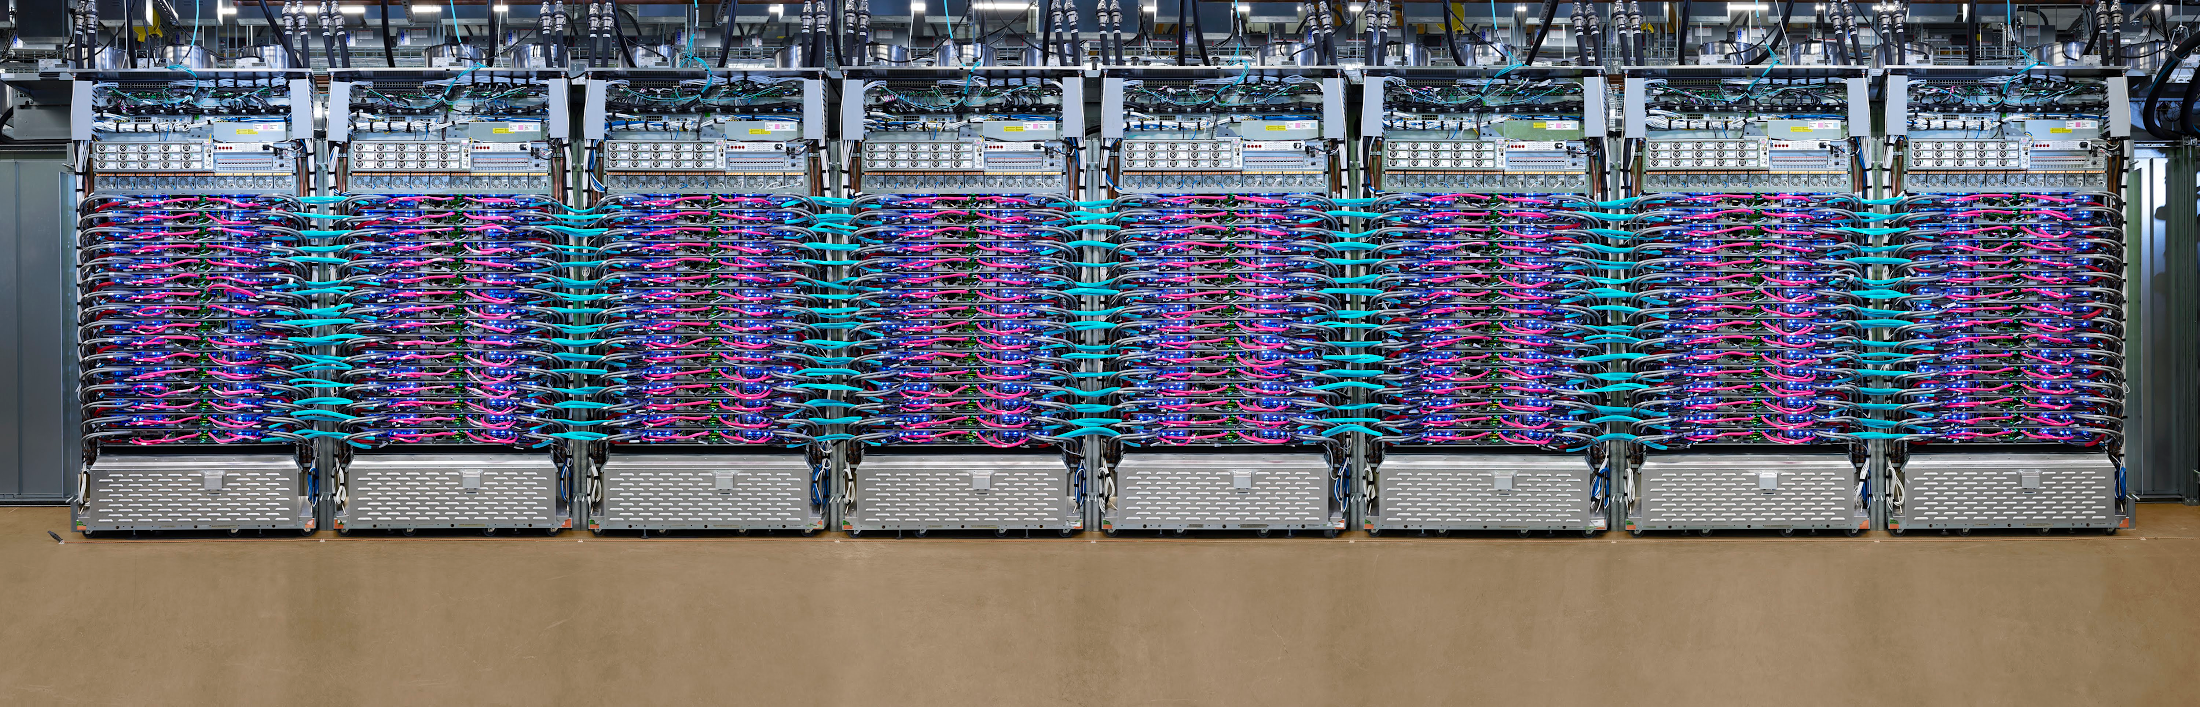 Cloud TPU Pods break AI training records | Google Cloud Blog